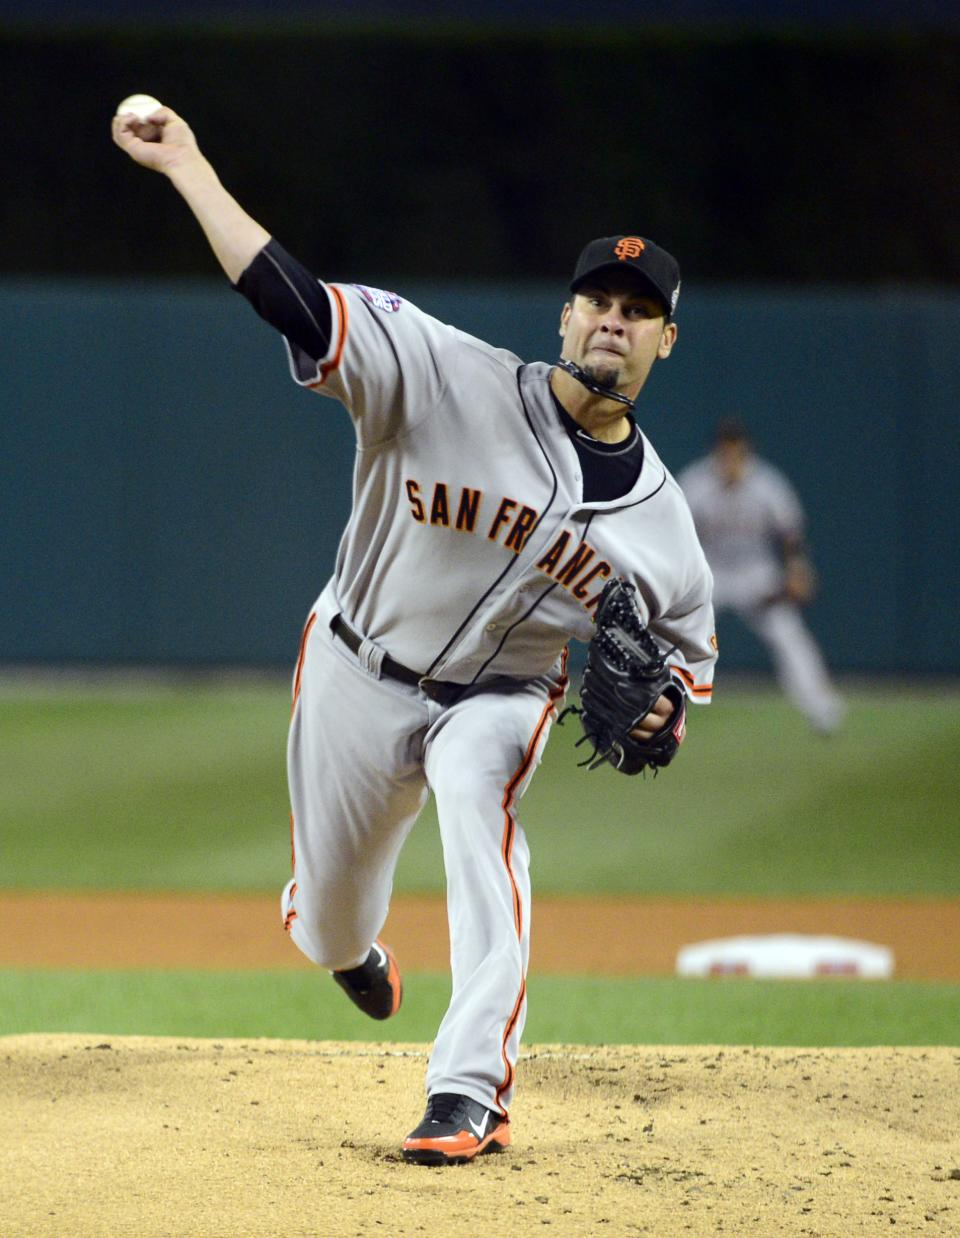 San Francisco Giants starting pitcher Ryan Vogelsong throws during the first inning of Game 3 of baseball's World Series against the Detroit Tigers Saturday, Oct. 27, 2012, in Detroit. (AP Photo/Scott Rovak, Pool)